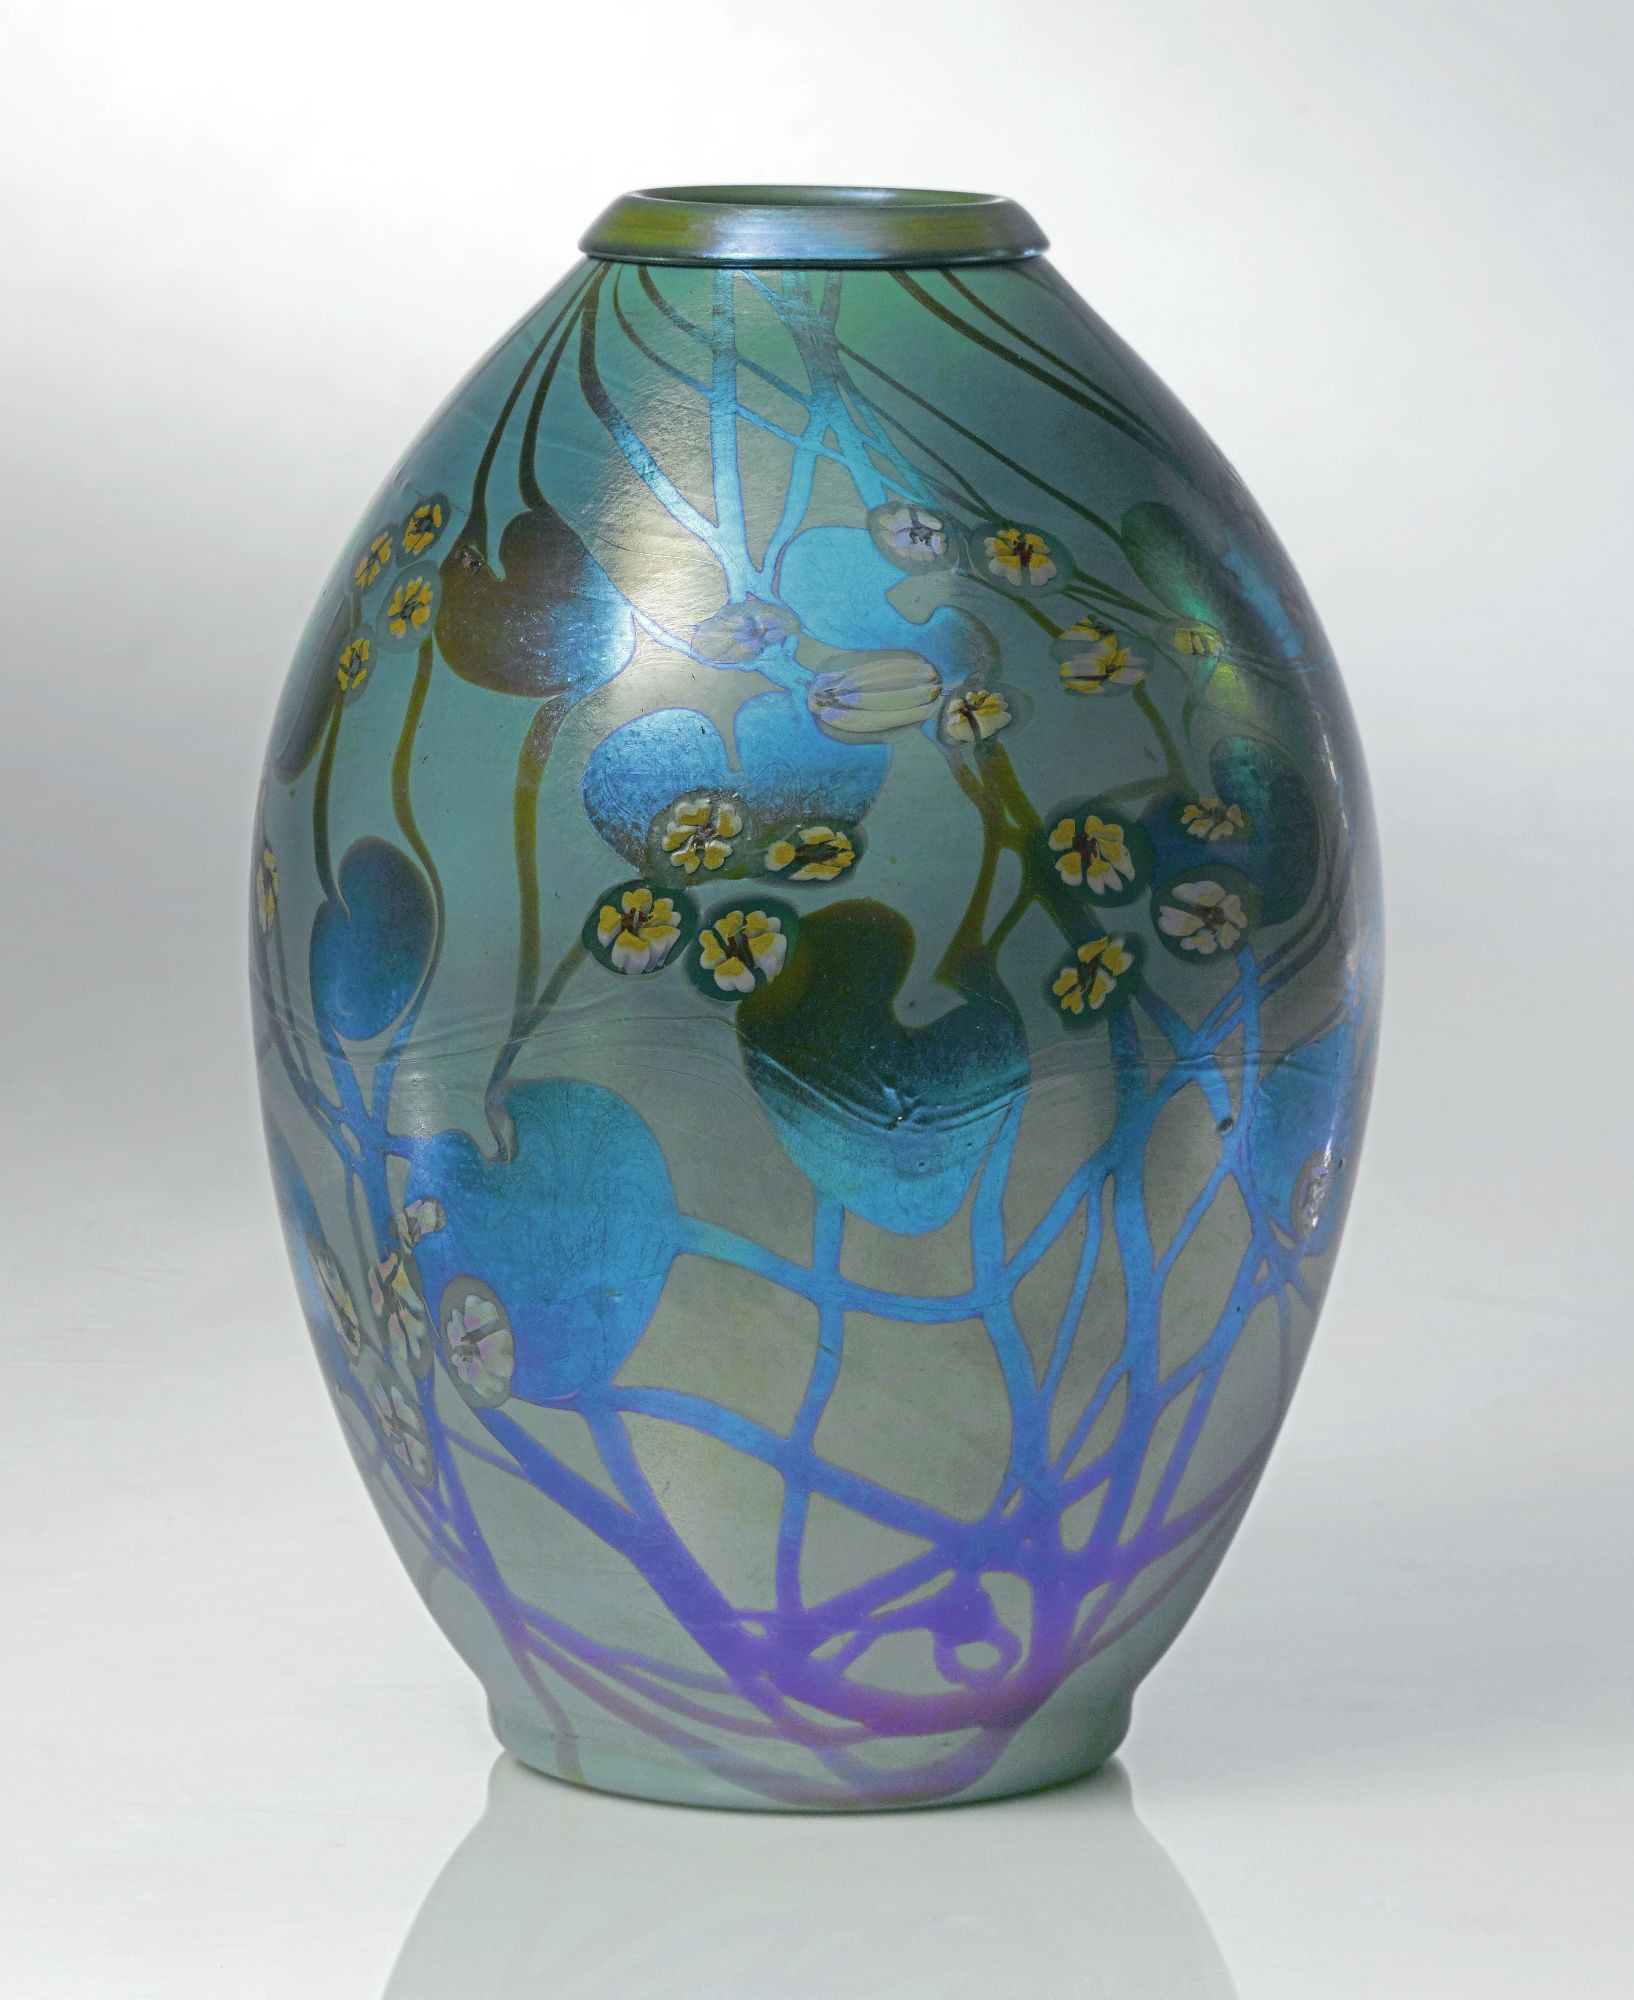 Tiffany Cypriote Glass Vase Of Tiffany Studios Millefiore Decorated Vase Tiffany Glass within Tiffany Studios Millefiore Decorated Vase